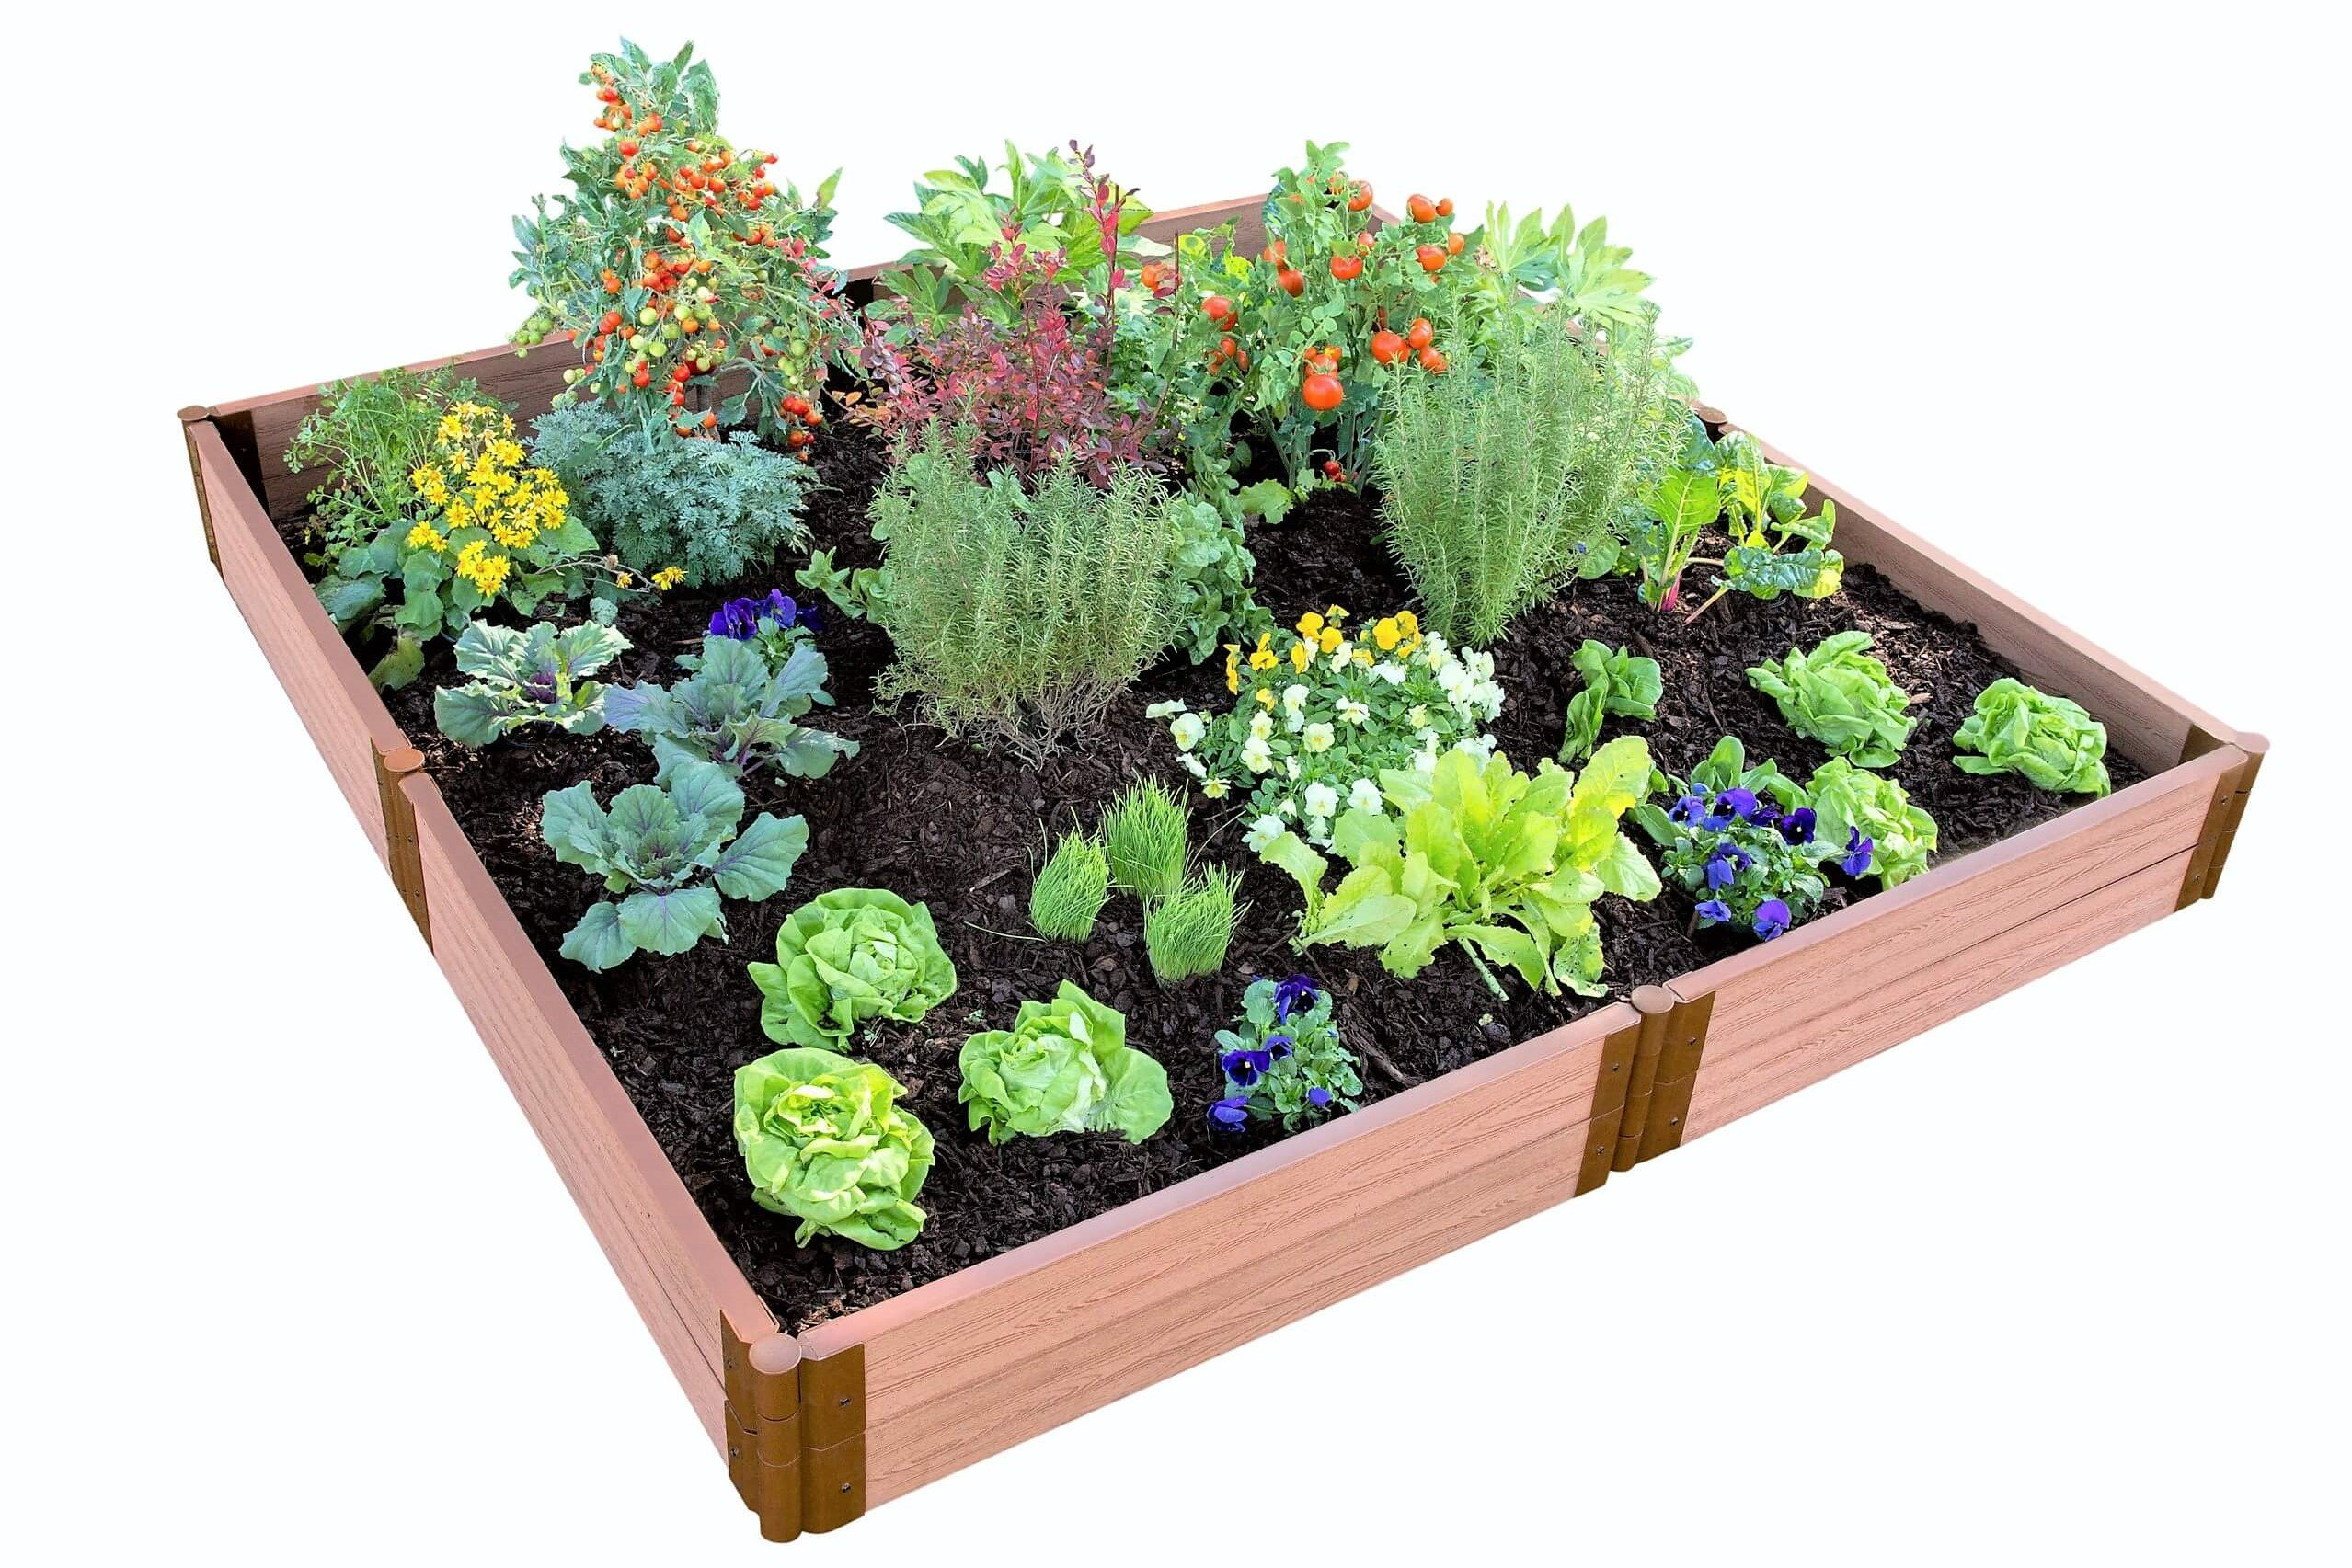 Frame It All 300001099 2'' Series Composite Raised Garden Bed Kit, 8' x 8' x 11'' by Frame It All